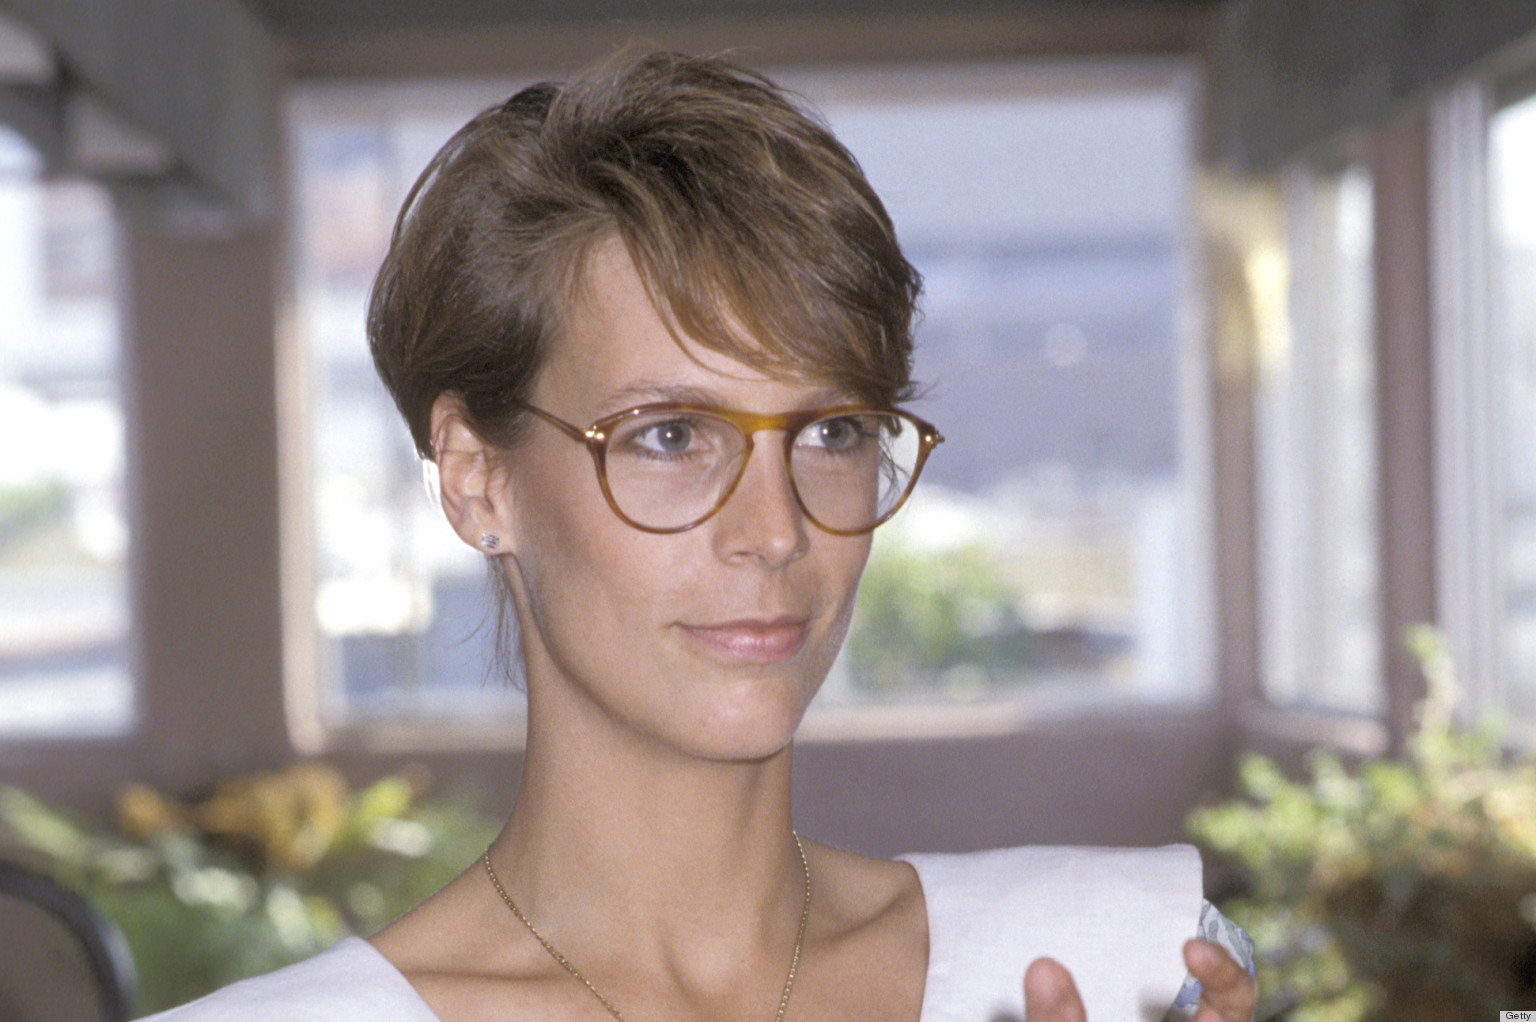 jamie lee curtis style evolution: from dowdy florals to best